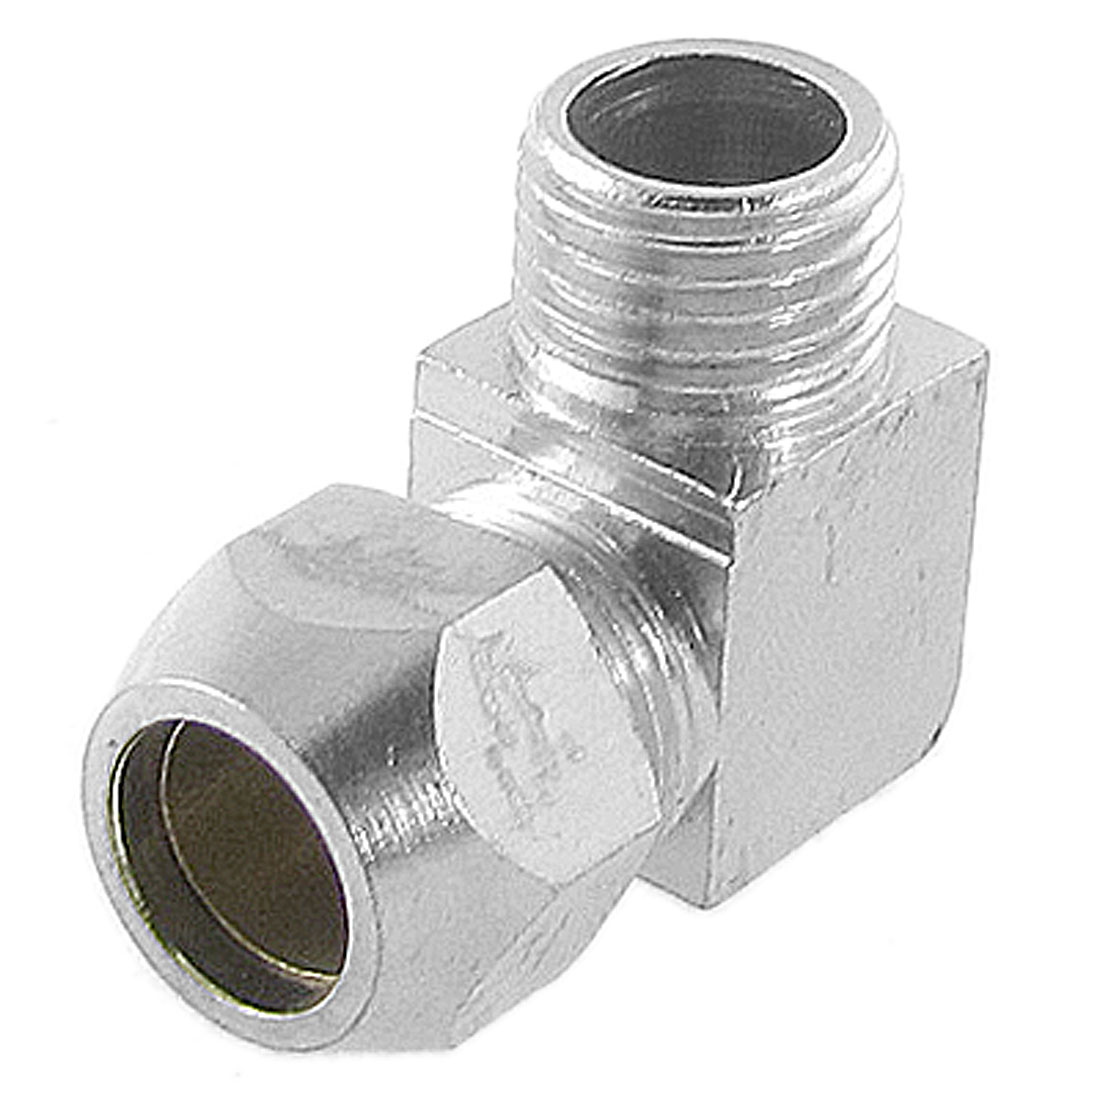 "Silver Tone Brass 3/8"" Tube 1/2"" Thread Right Angle Compression Male Elbow Connector Pipe Adapter"